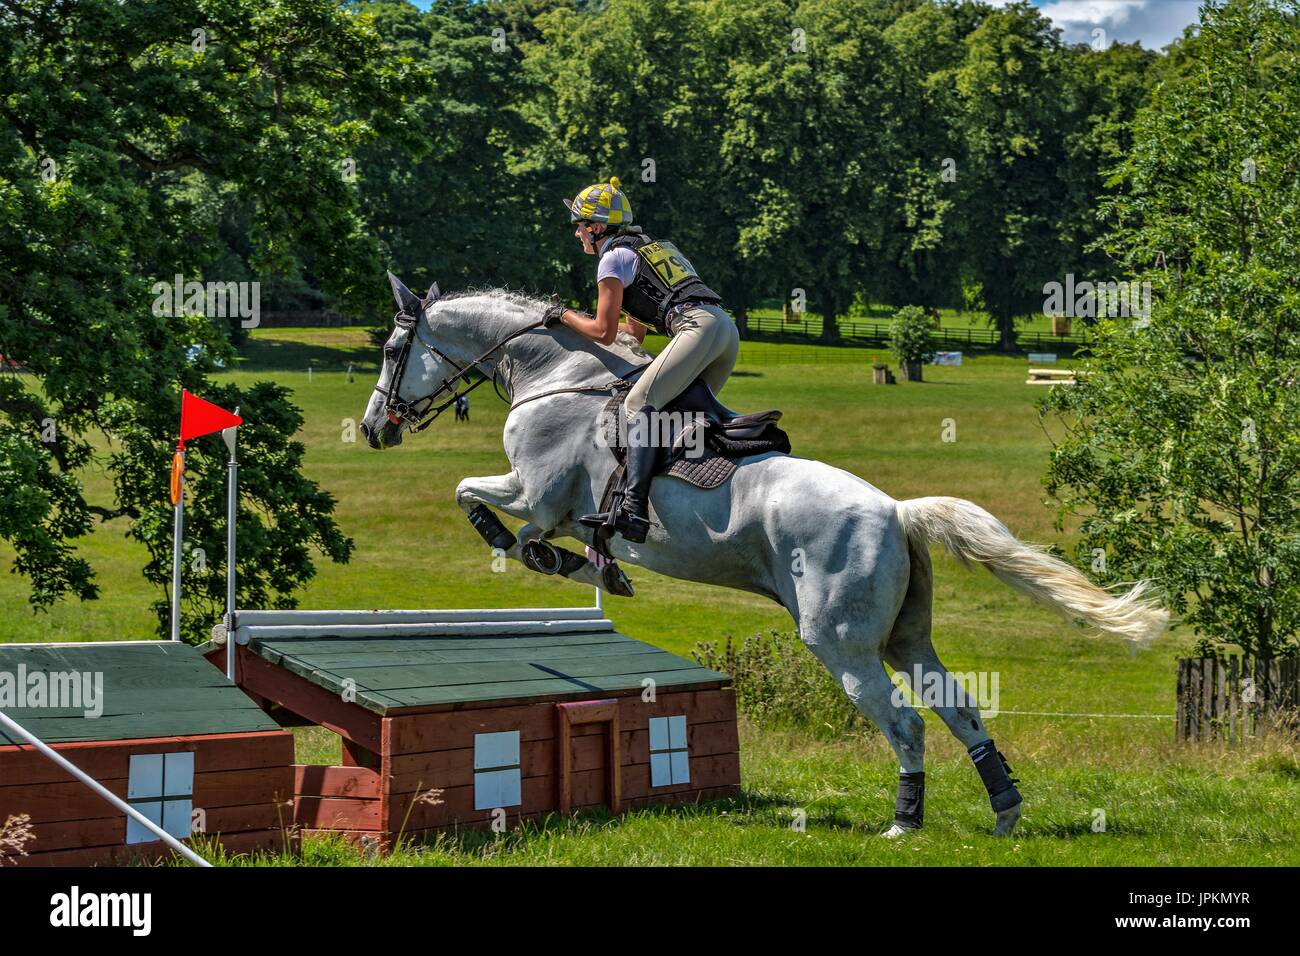 Aske equestrian horse trials at Richmond, Yorkshire. - Stock Image